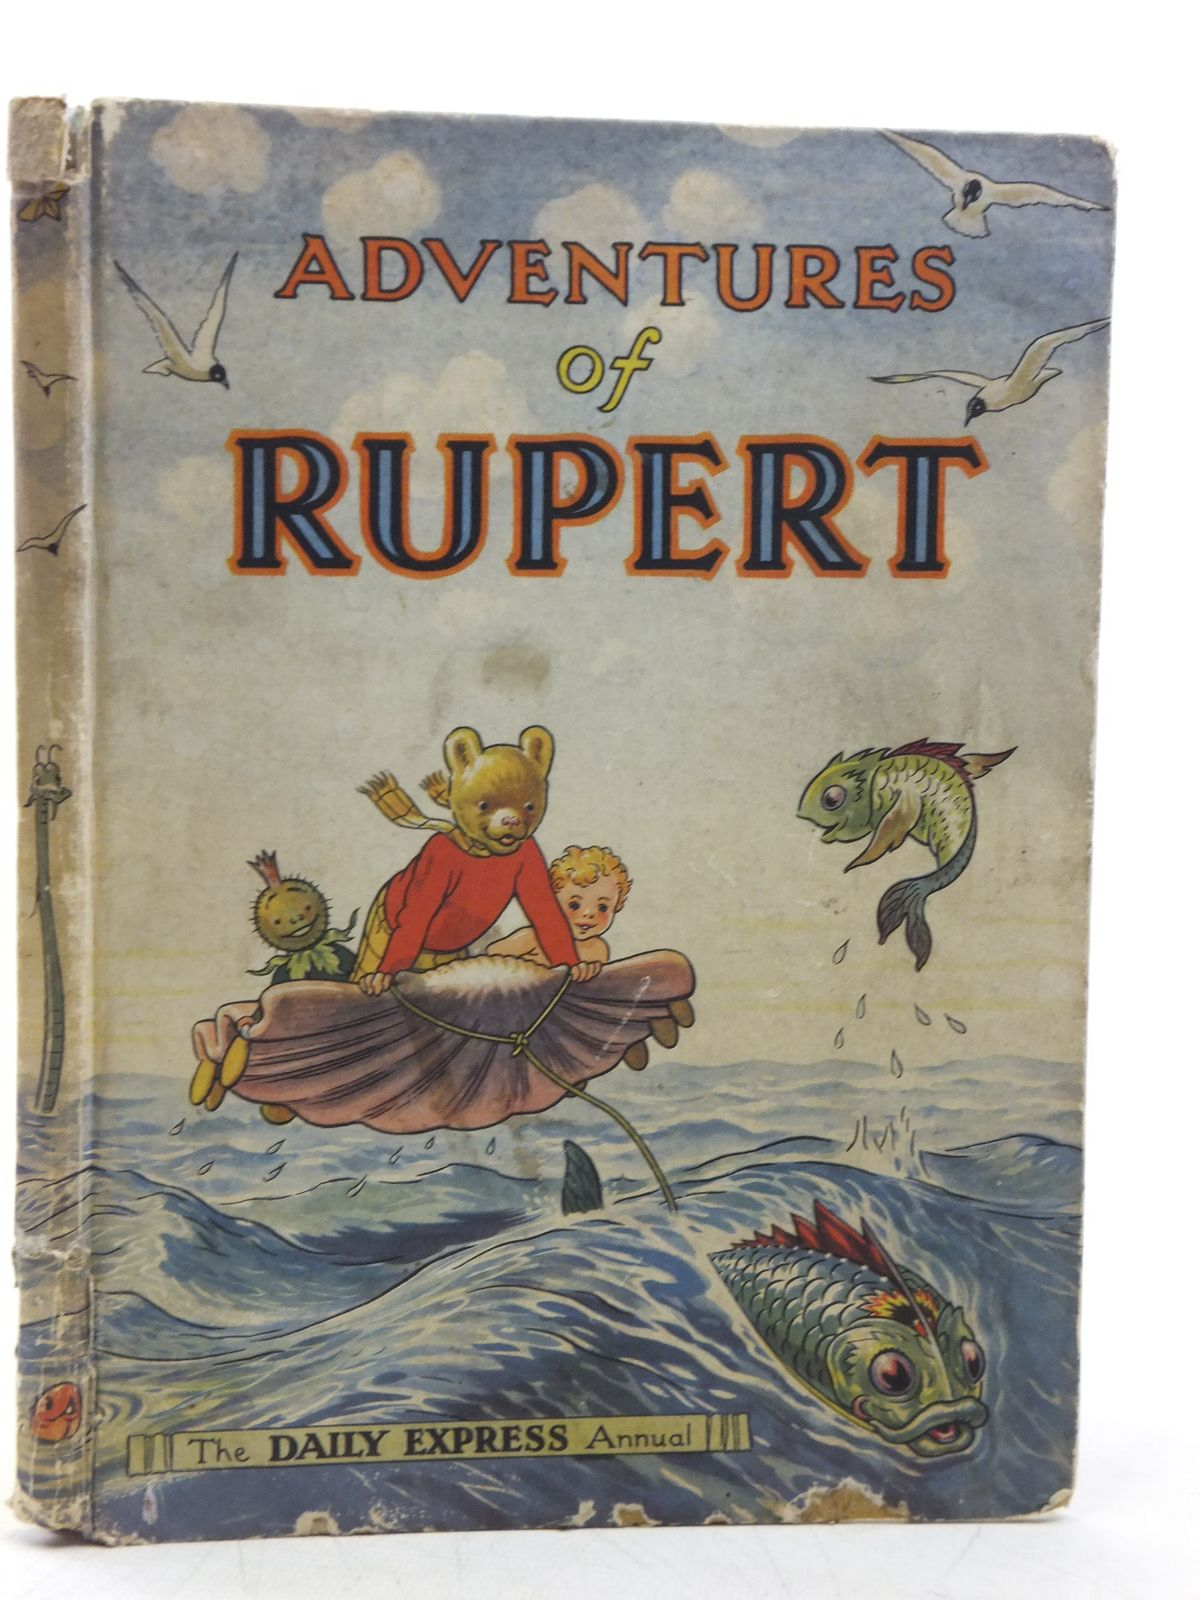 Photo of RUPERT ANNUAL 1950 - ADVENTURES OF RUPERT written by Bestall, Alfred illustrated by Bestall, Alfred published by Daily Express (STOCK CODE: 2119809)  for sale by Stella & Rose's Books